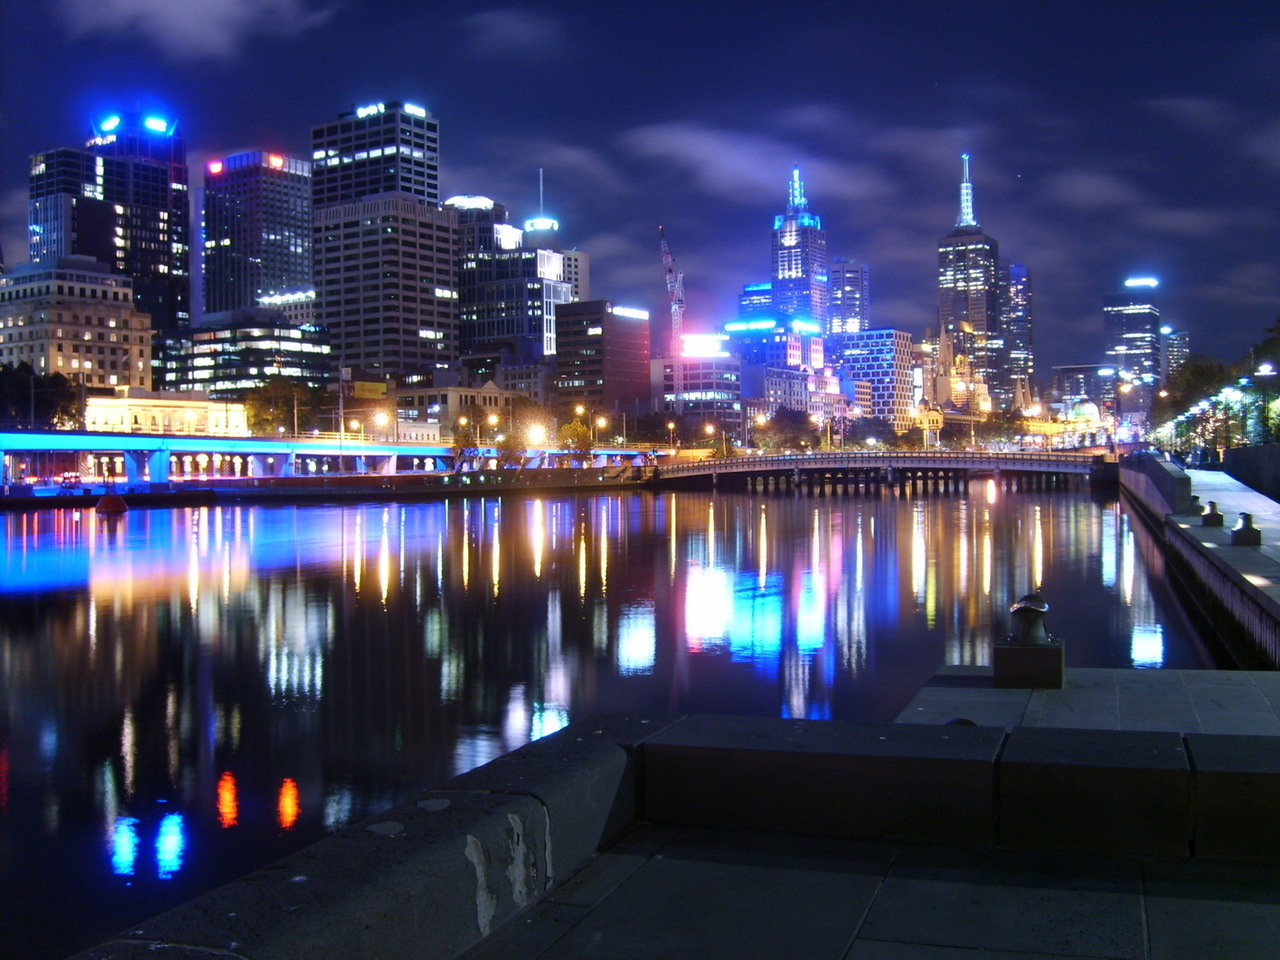 melbourne-at-night-1-1446256-1280x960.jpg